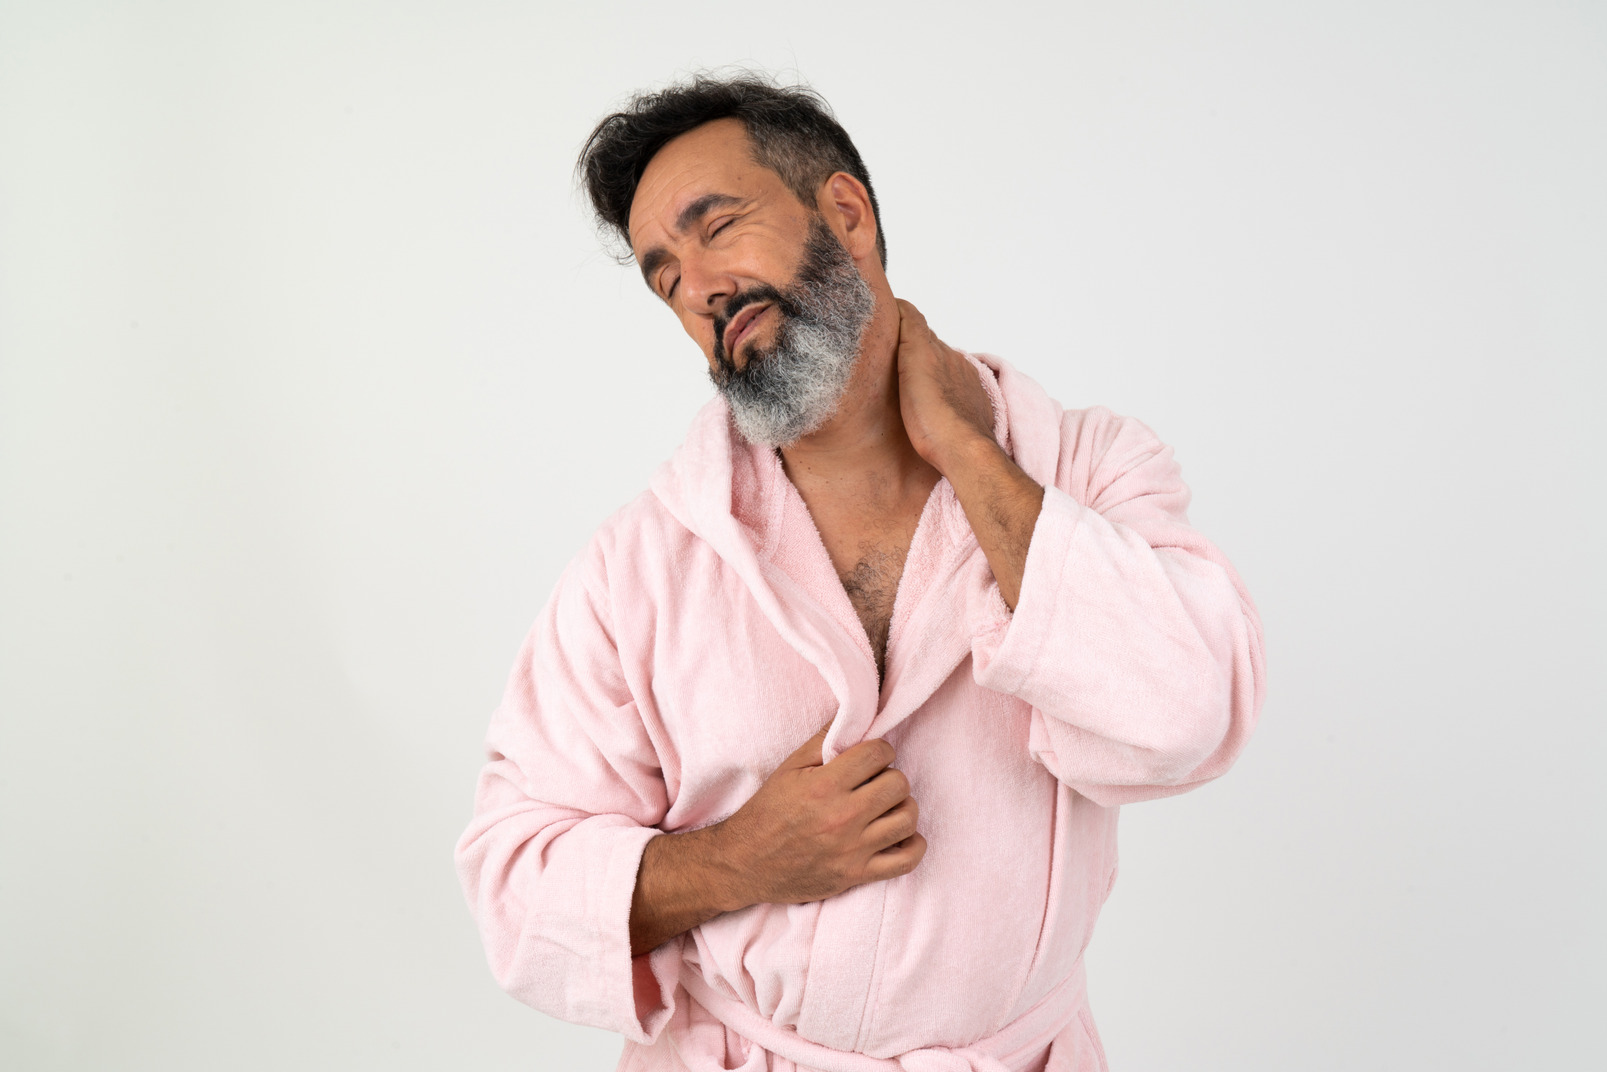 neck ache causes me great discomfort